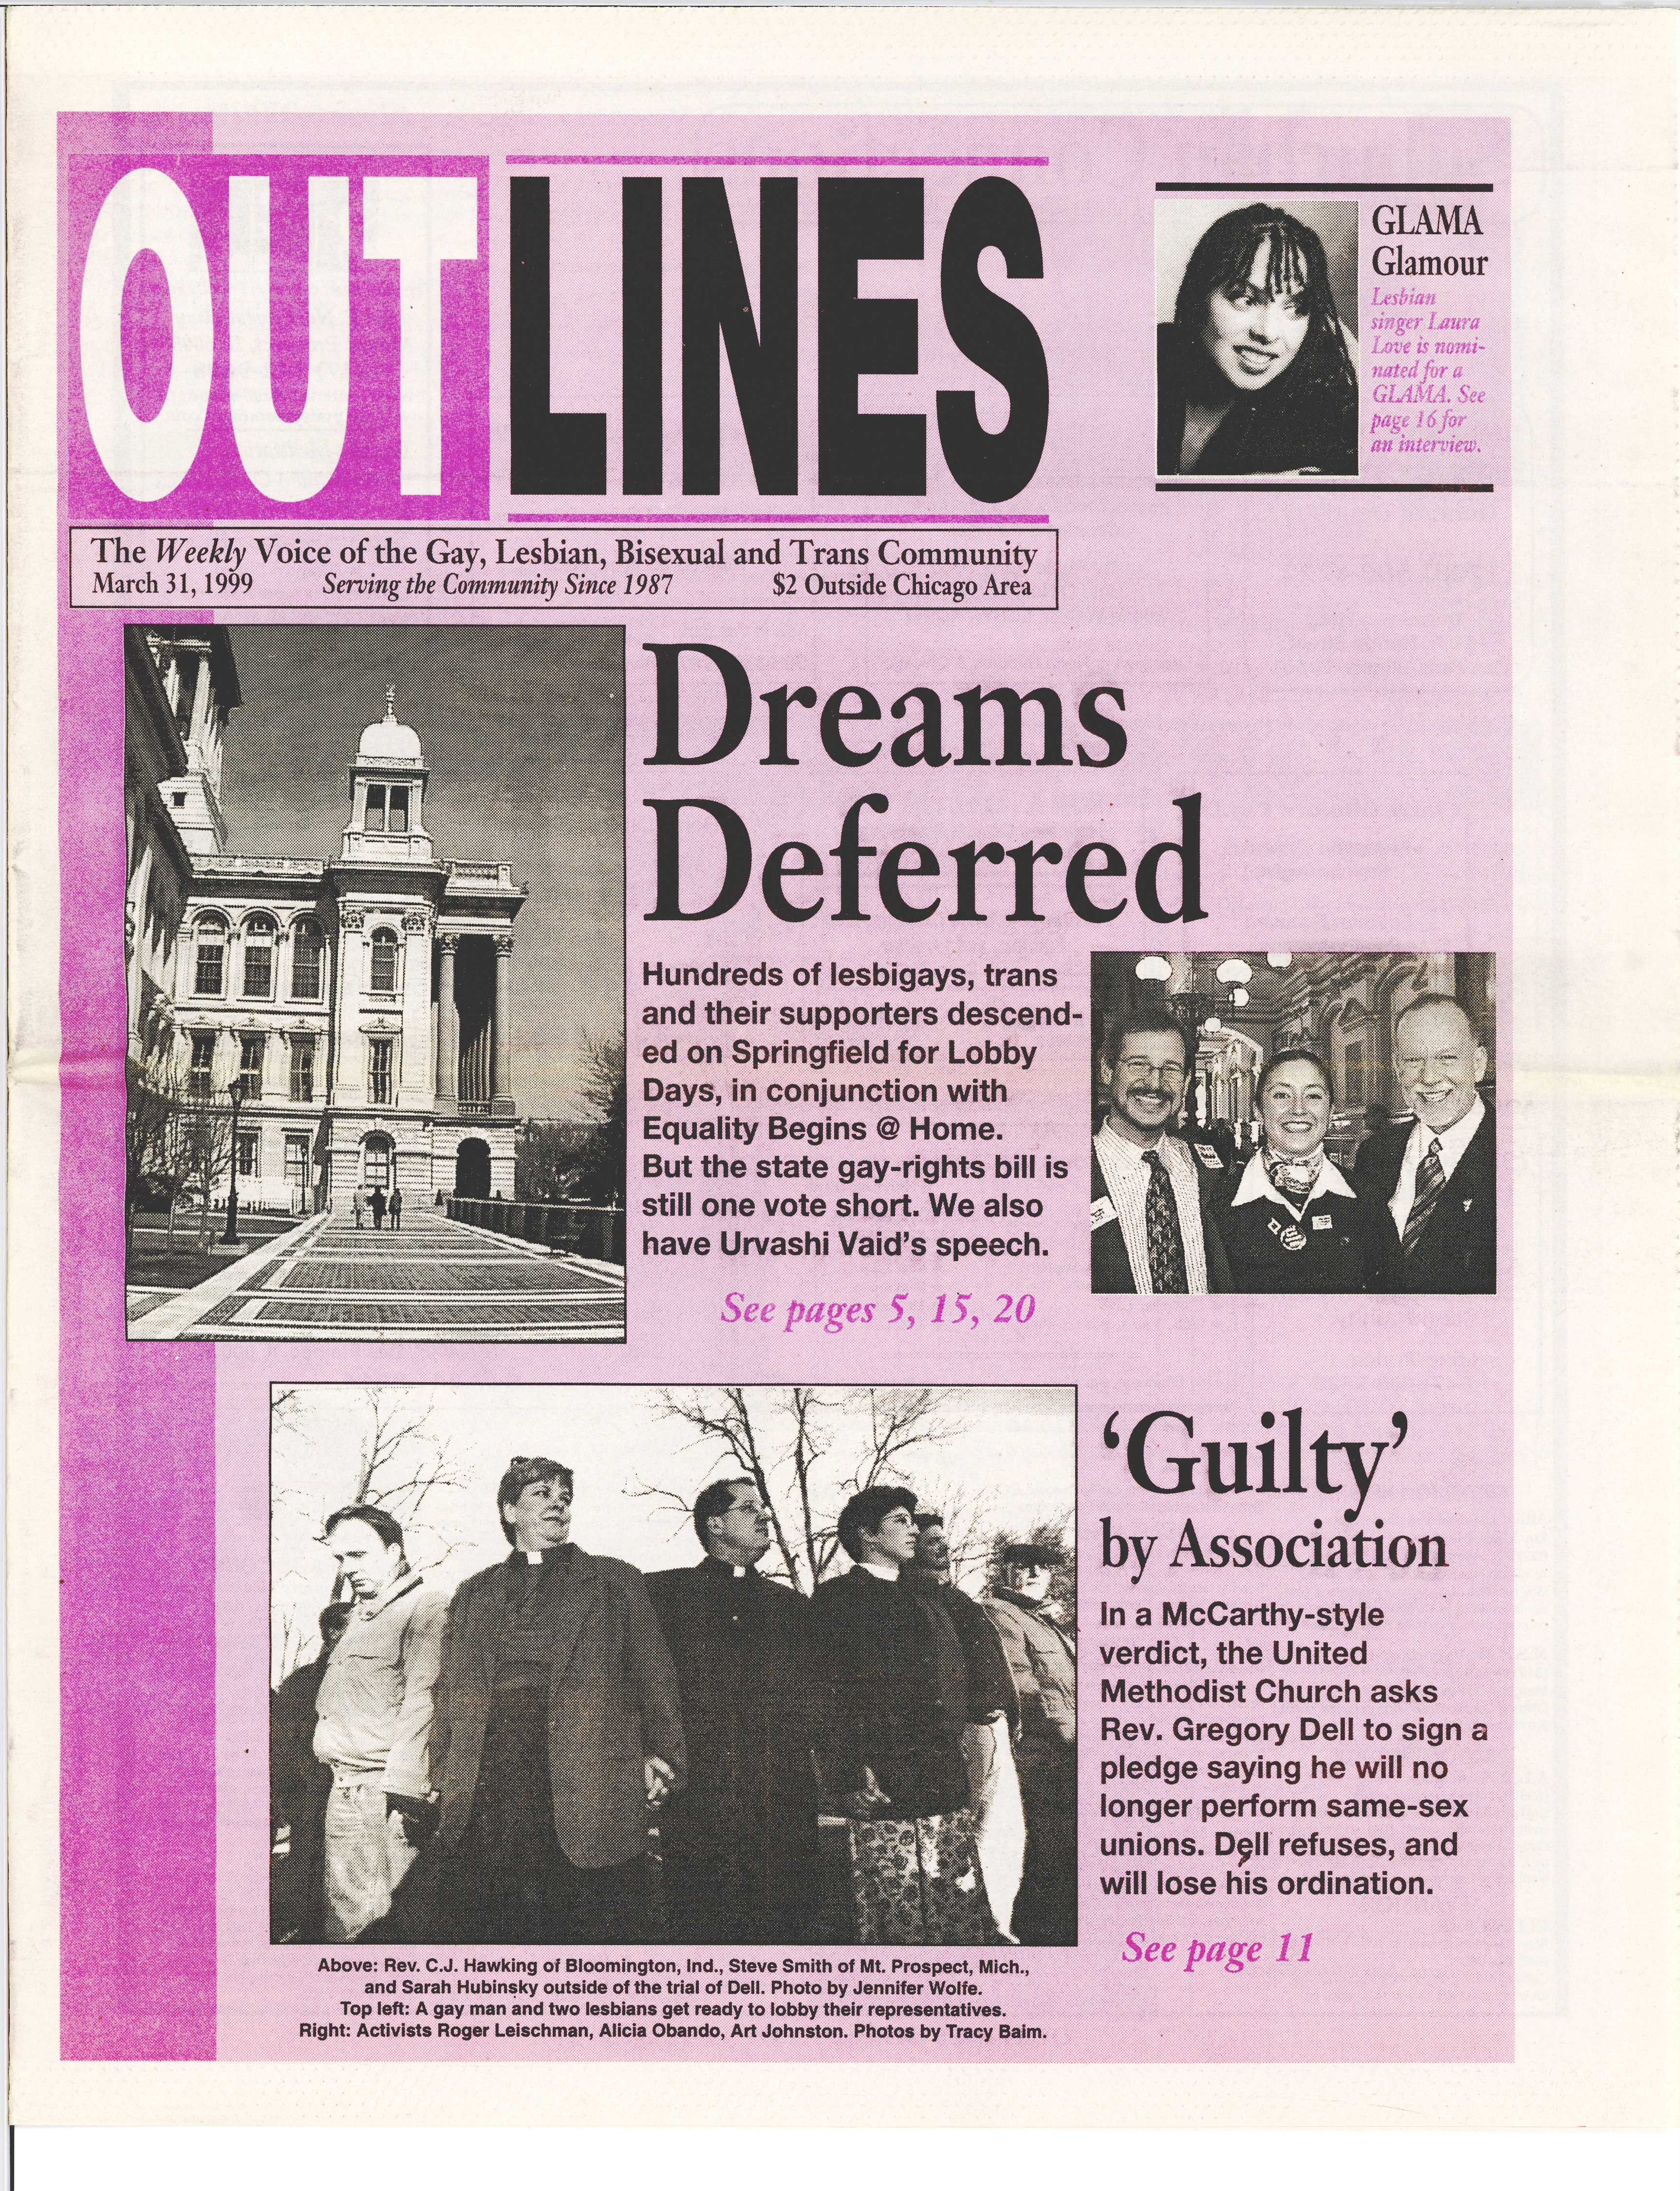 OUTLINES The Weekly Voice of the Gay, Lesbian, Bisexual and Trans Community  March 31, 1999 Serving the Community Since 1987